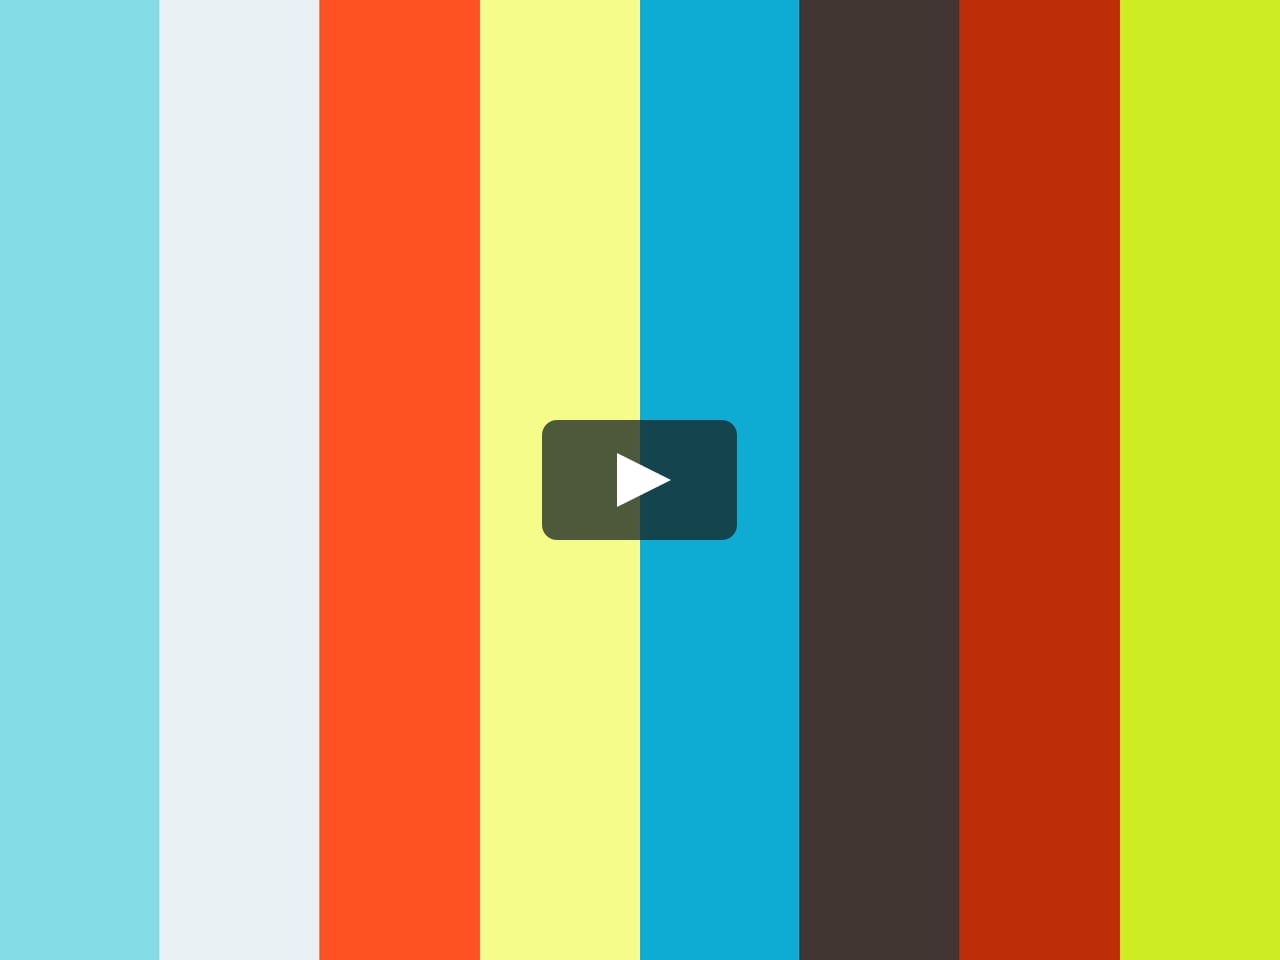 Lady Gaga Al Watch What Happens Live Tradotto Da Ladygagaitalia It On Vimeo